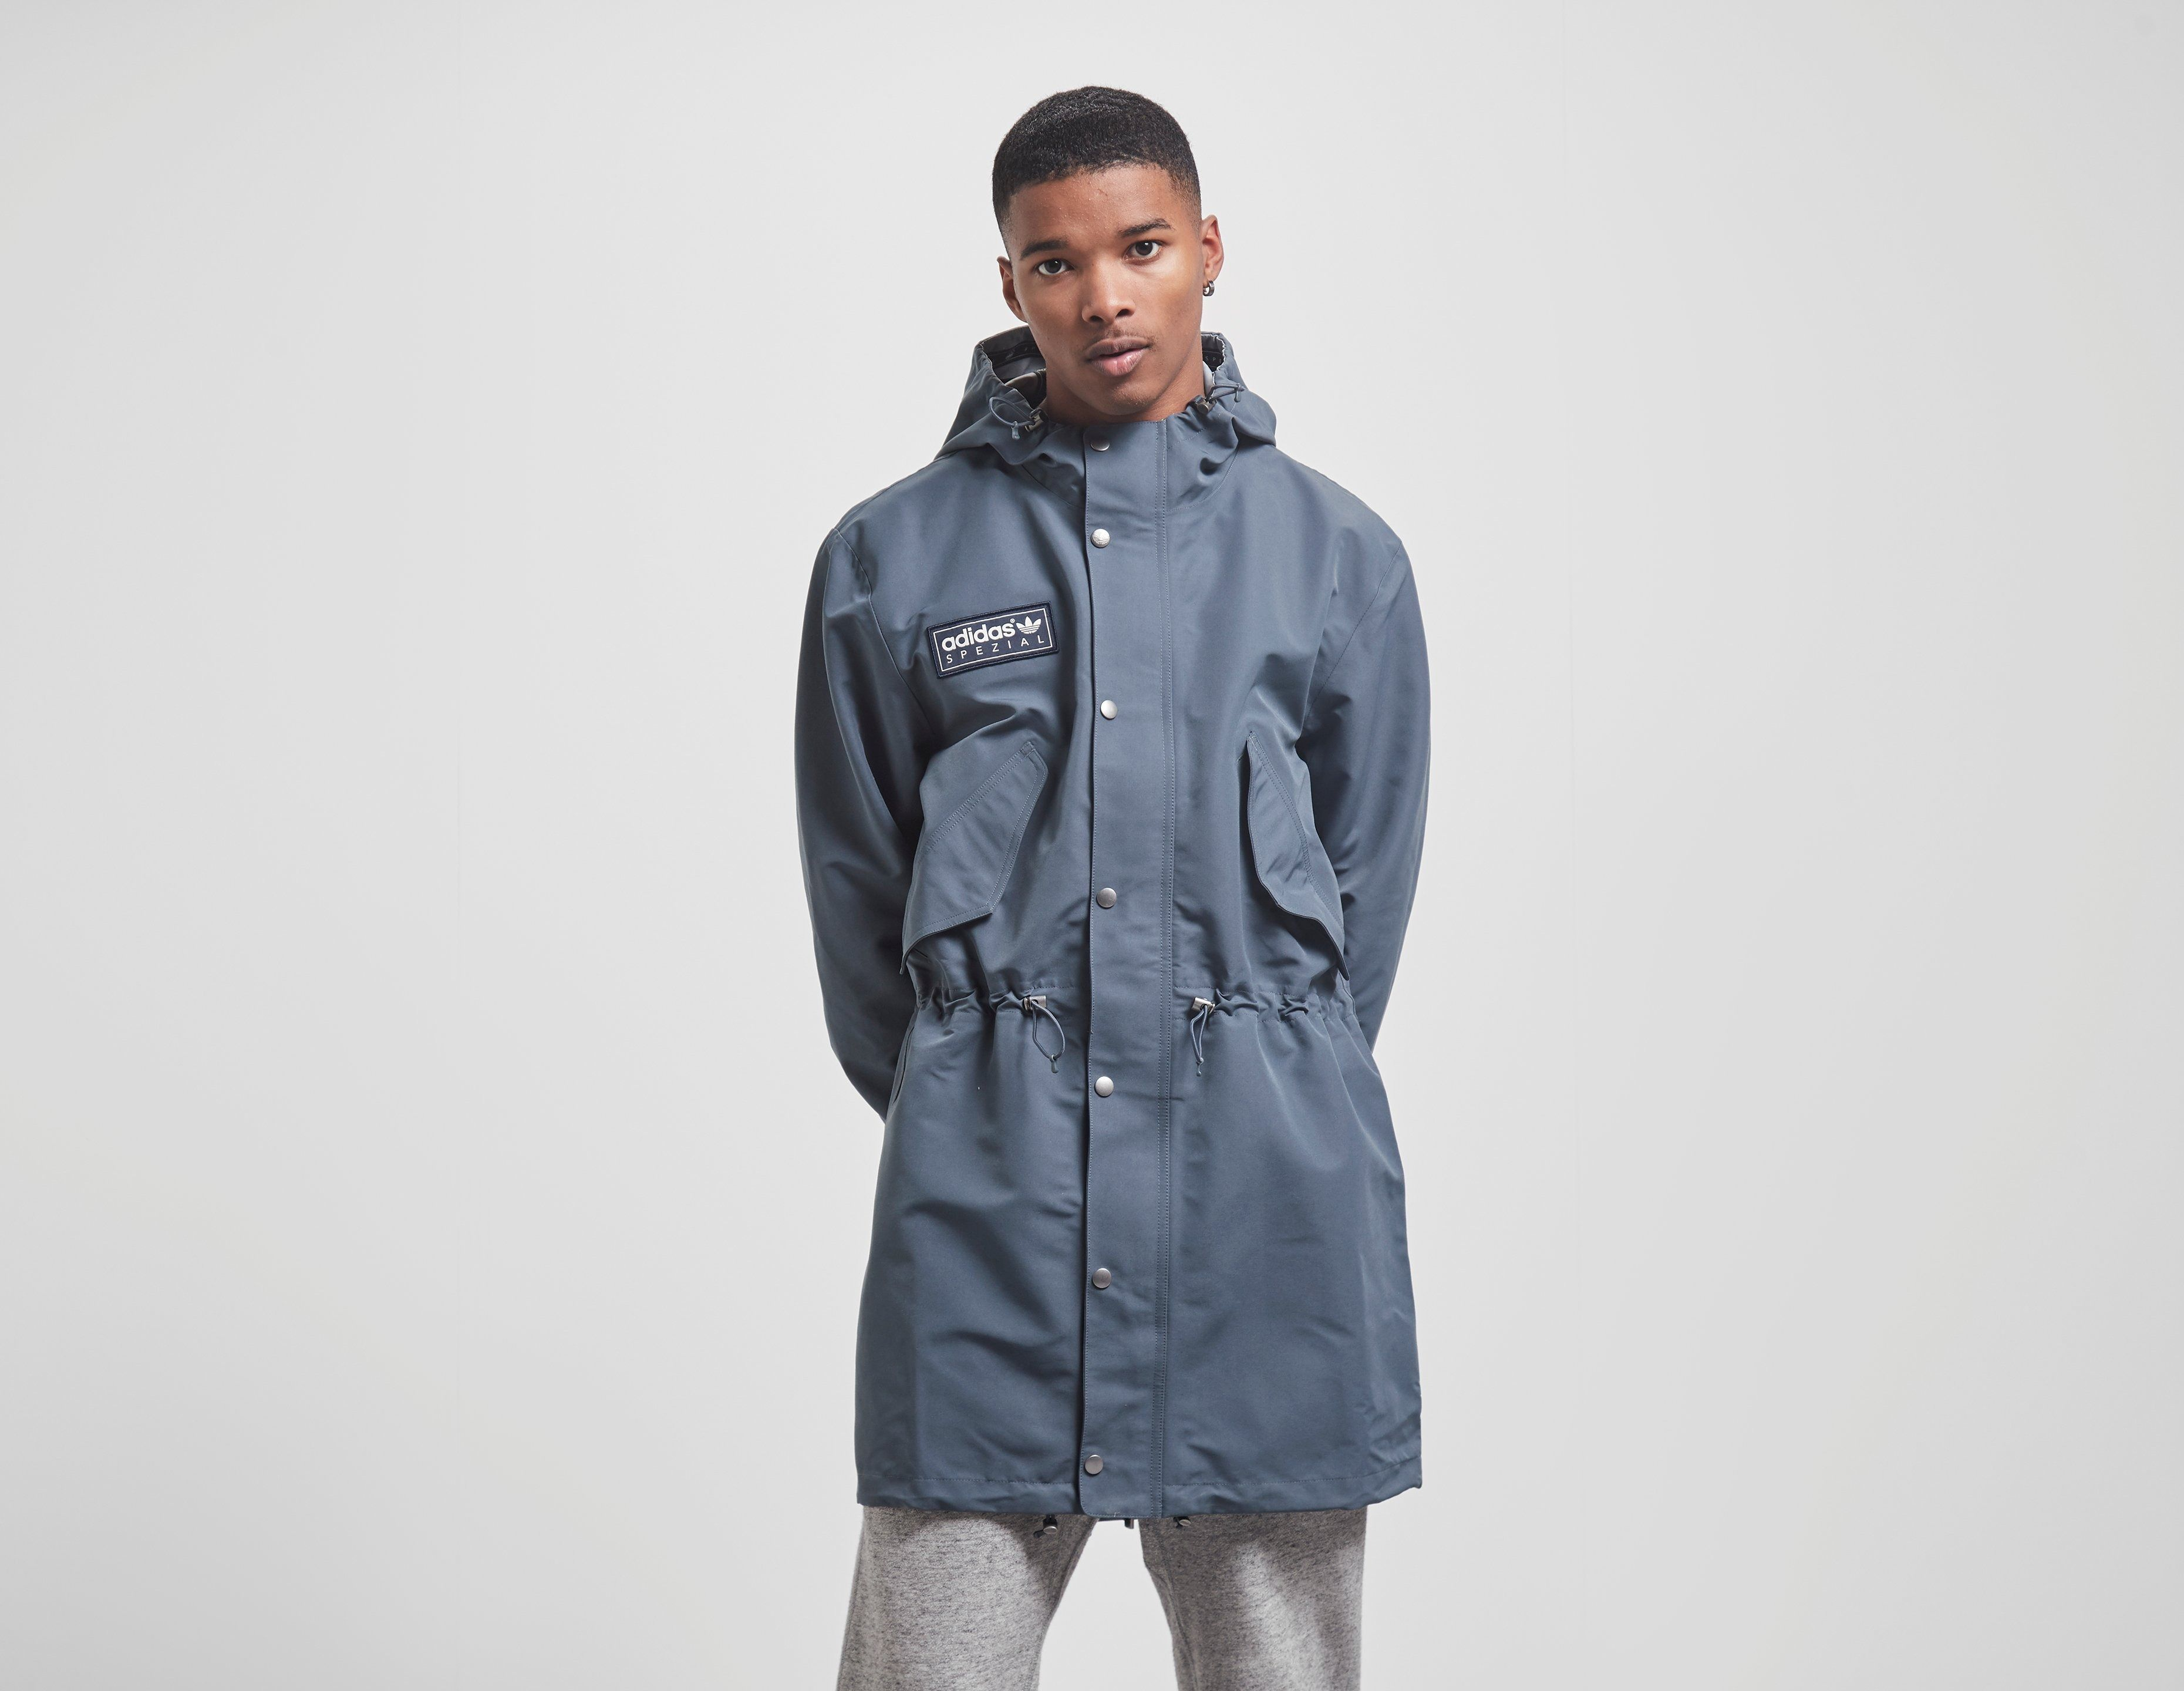 Adidas Spezial Rossendale Parkaadidas Spezial Rossendale Parka Find Out More On Footpatrol Adidas Spezial Blue Adidas Parka